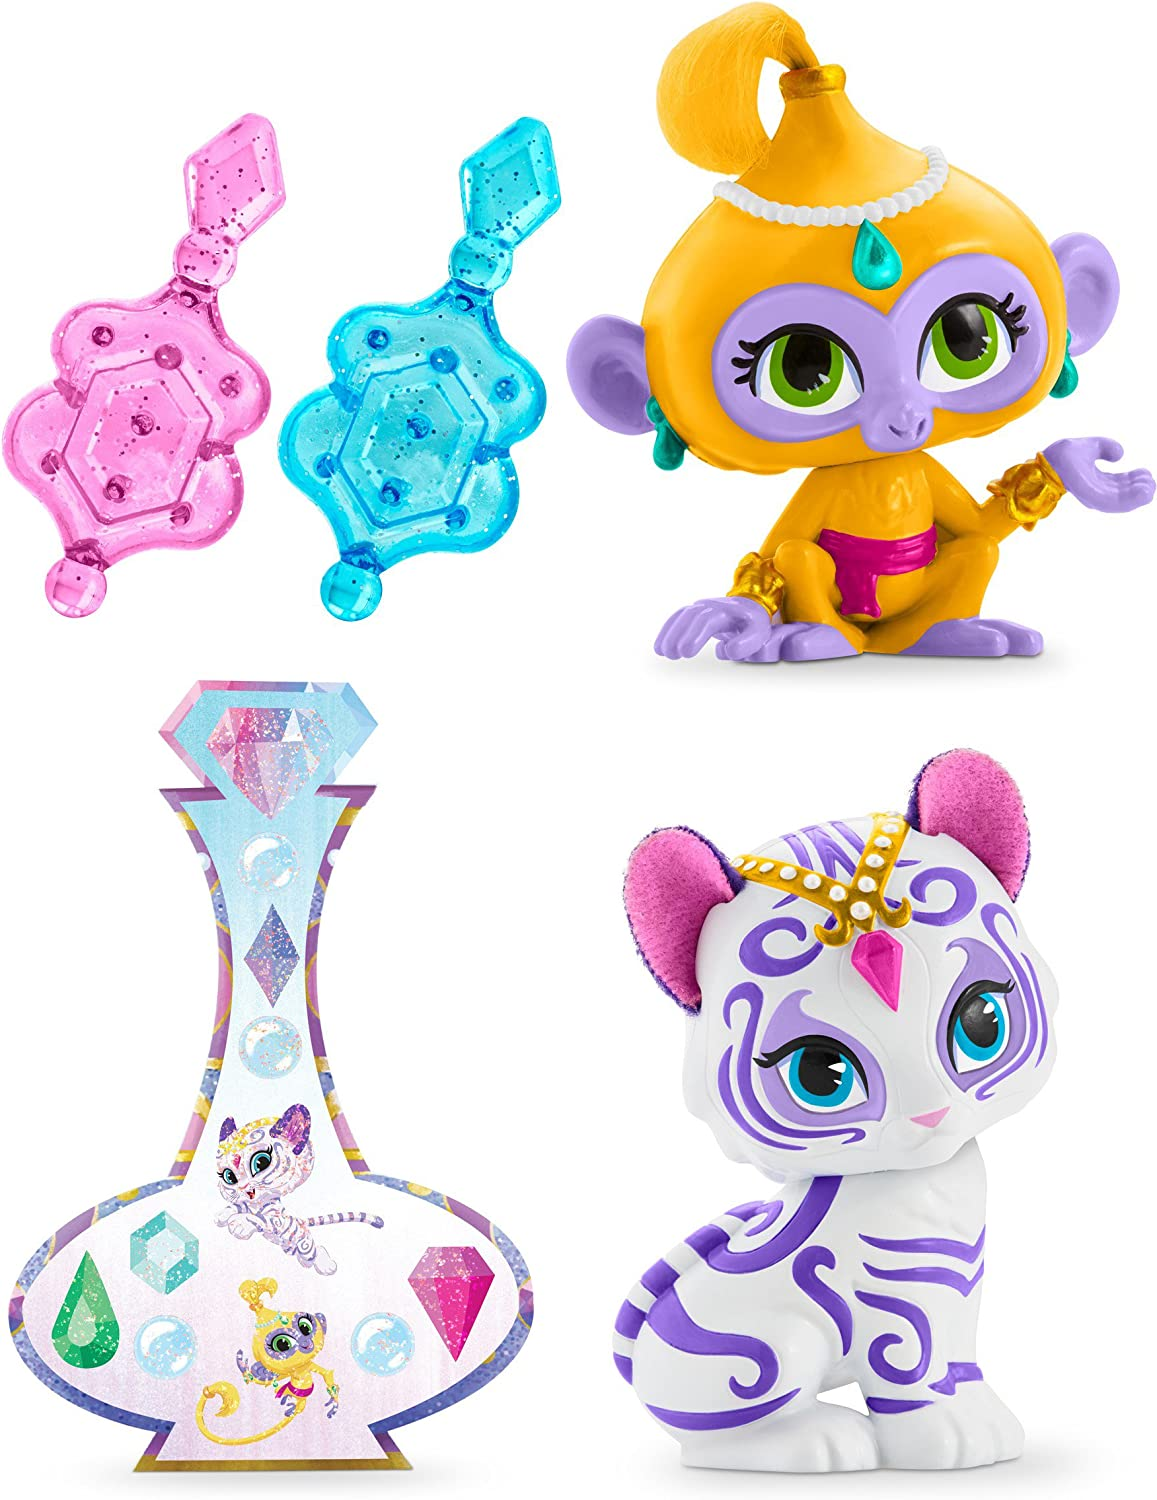 25% OFF Fisher-Price Nickelodeon Shimmer Shine Nahal Tala and Animer and price revision